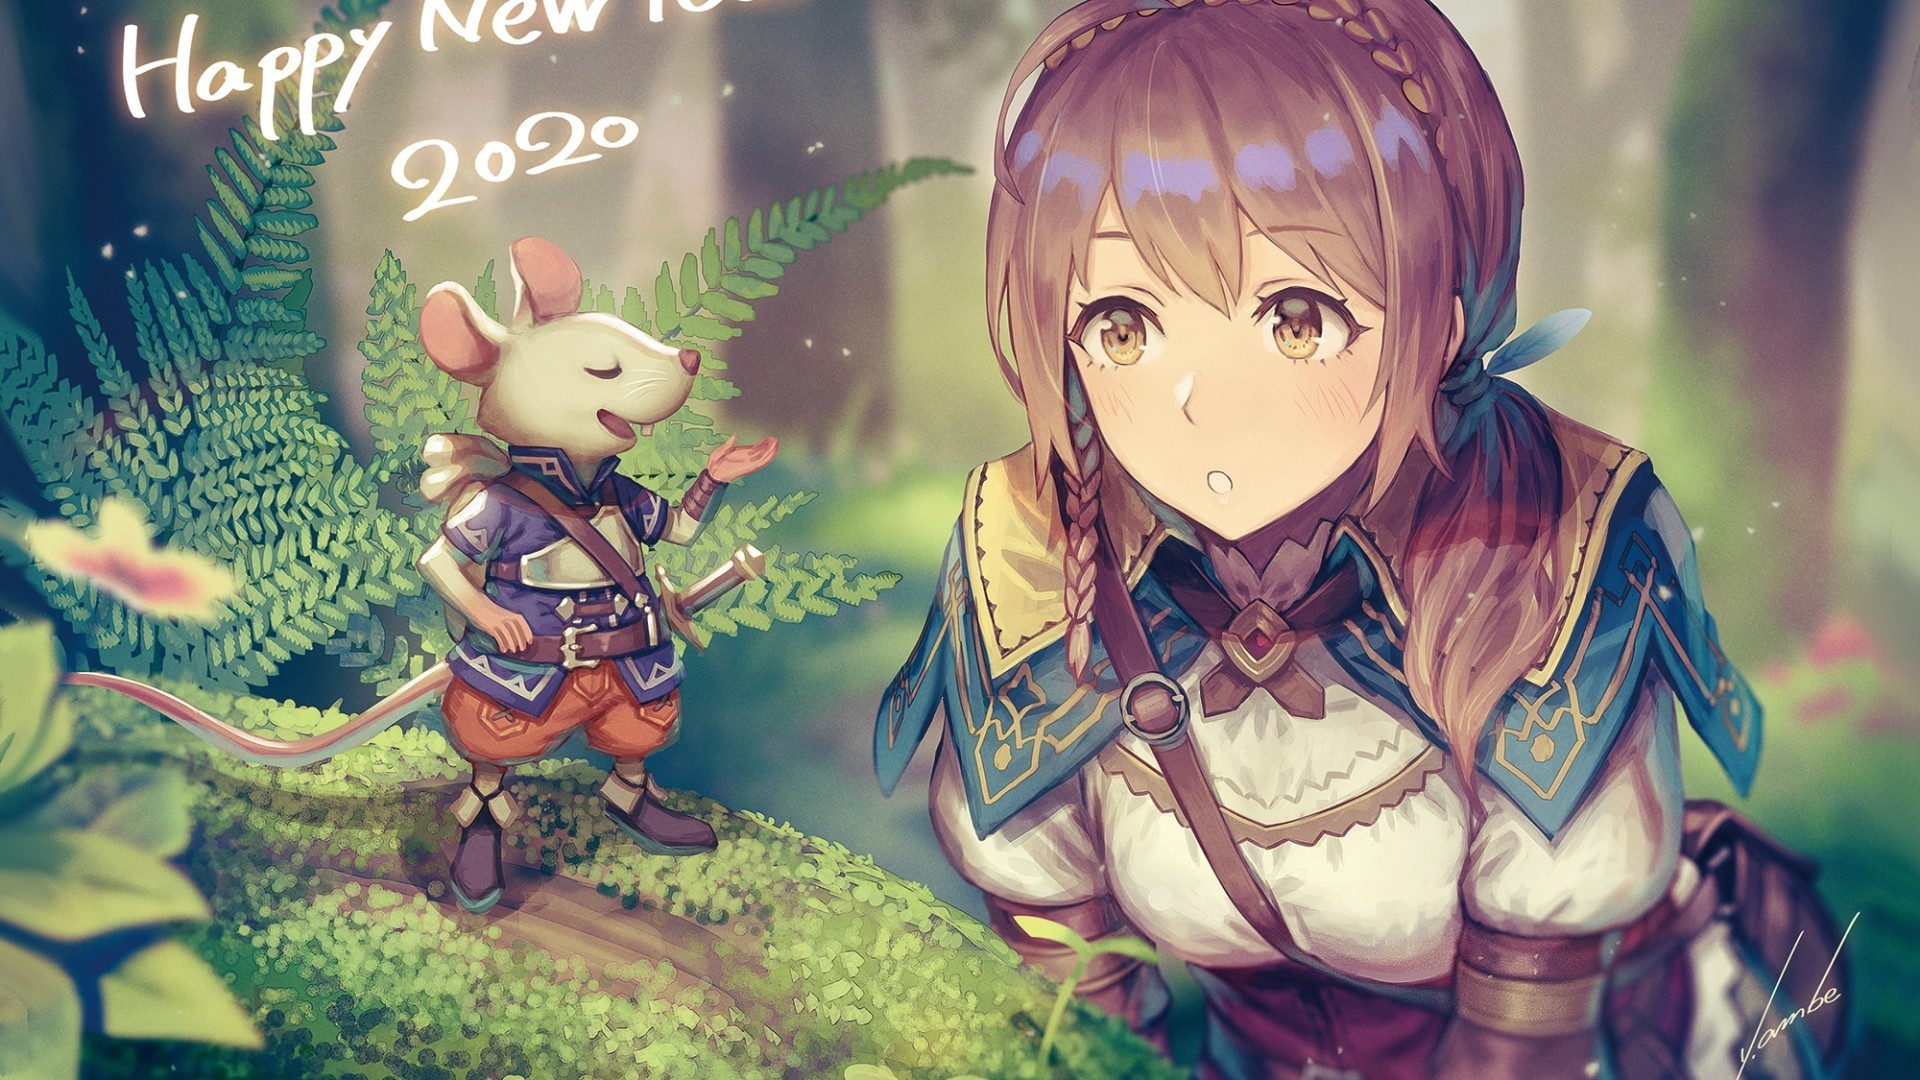 Download 1920x1080 Anime Girl Adventurer Forest Light Armor 1920x1080